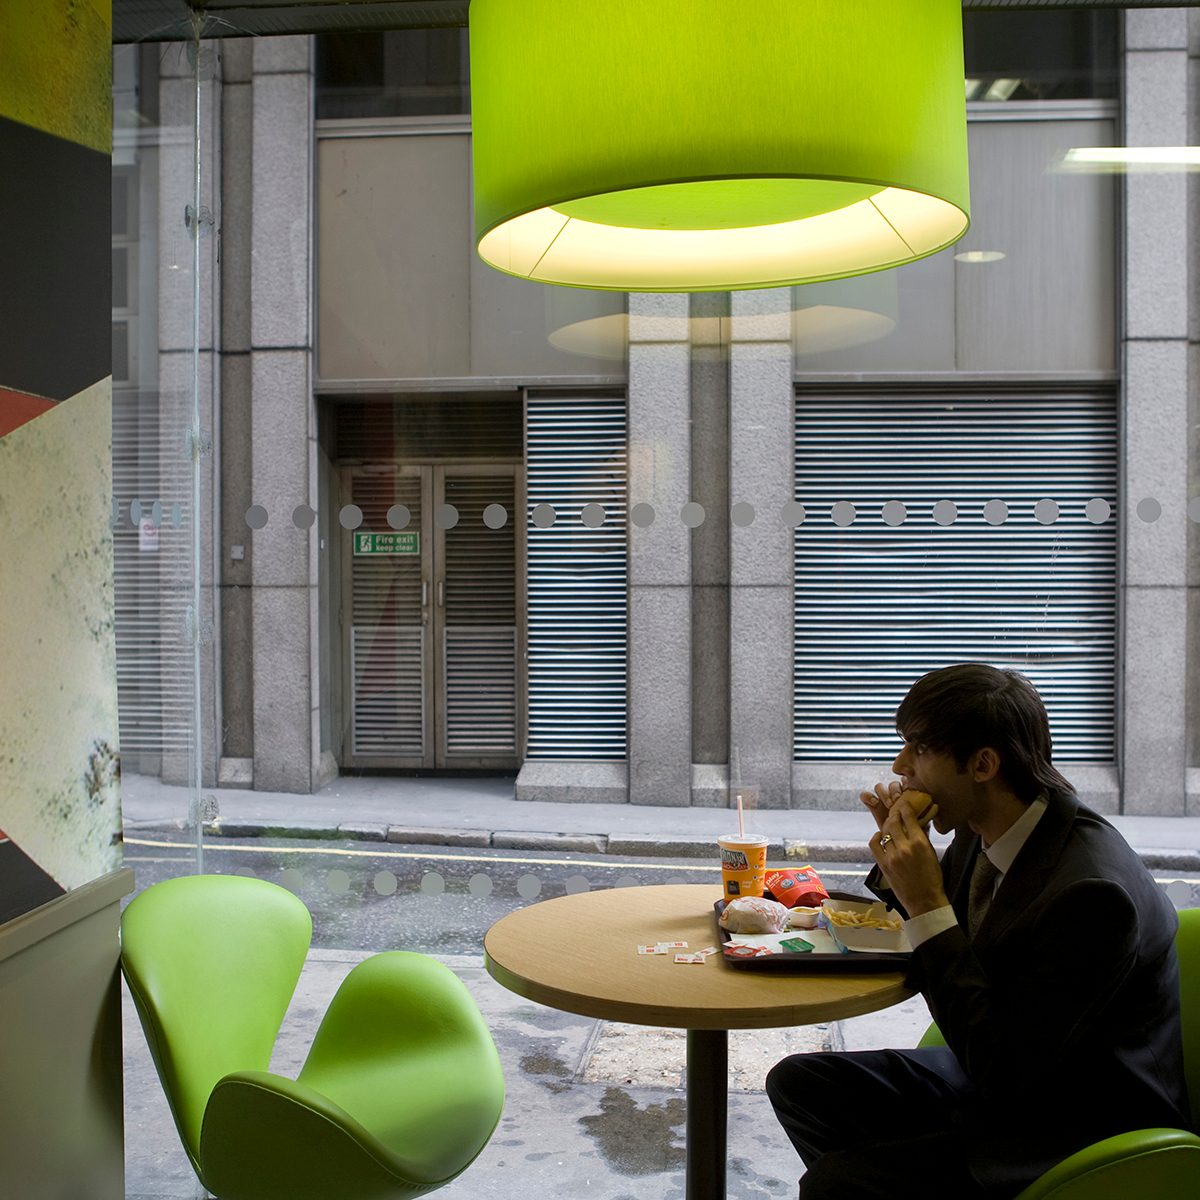 A McDonald's customer tucks into his Big Mac, oblivious to the new trendy coffee bar style ambience and design at the Cannon Street branch of McDonalds in the City of London. This is one of the flagship branches for this new design as the corporation takes on the process of 're-imaging' the fast food chain. This redesign, with new colours: khaki, lime, orange and russet, in a vibrant mixture of geometrics, lines and swooshes has been created for McDonald's by French Designer, Philippe Avanzi. It includes comfortable easy-chairs and stools, drop down lighting and in total, a whole new feel. This is part of a new global strategy to give McDonalds branches in different countries a uniquely local character, both in terms of the decor and some of the food served. The menu has even seen the introduction of sustainably grown coffee, organic milk etc. (Photo by Gideon Mendel/Corbis via Getty Images)